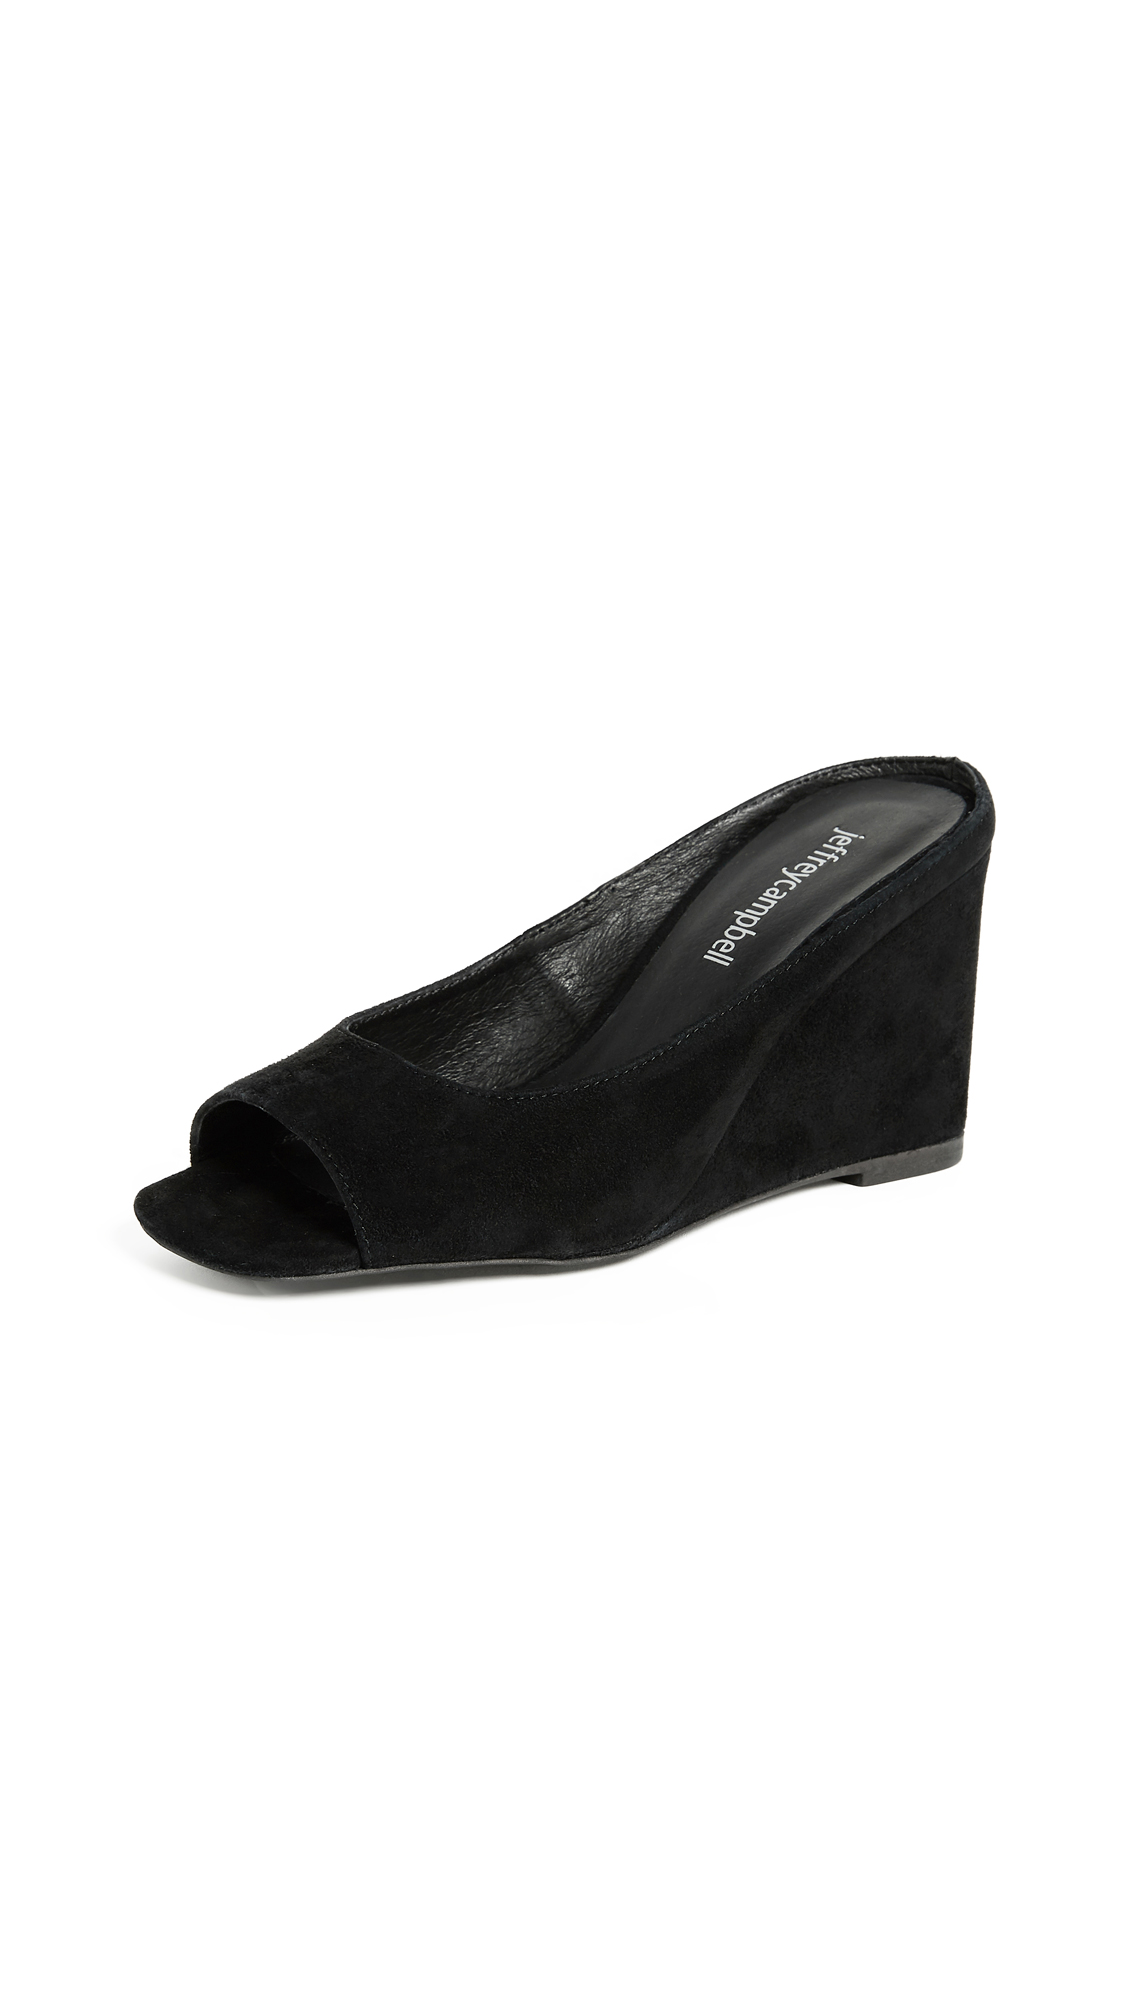 Jeffrey Campbell Generous Peep Toe Wedges - Black